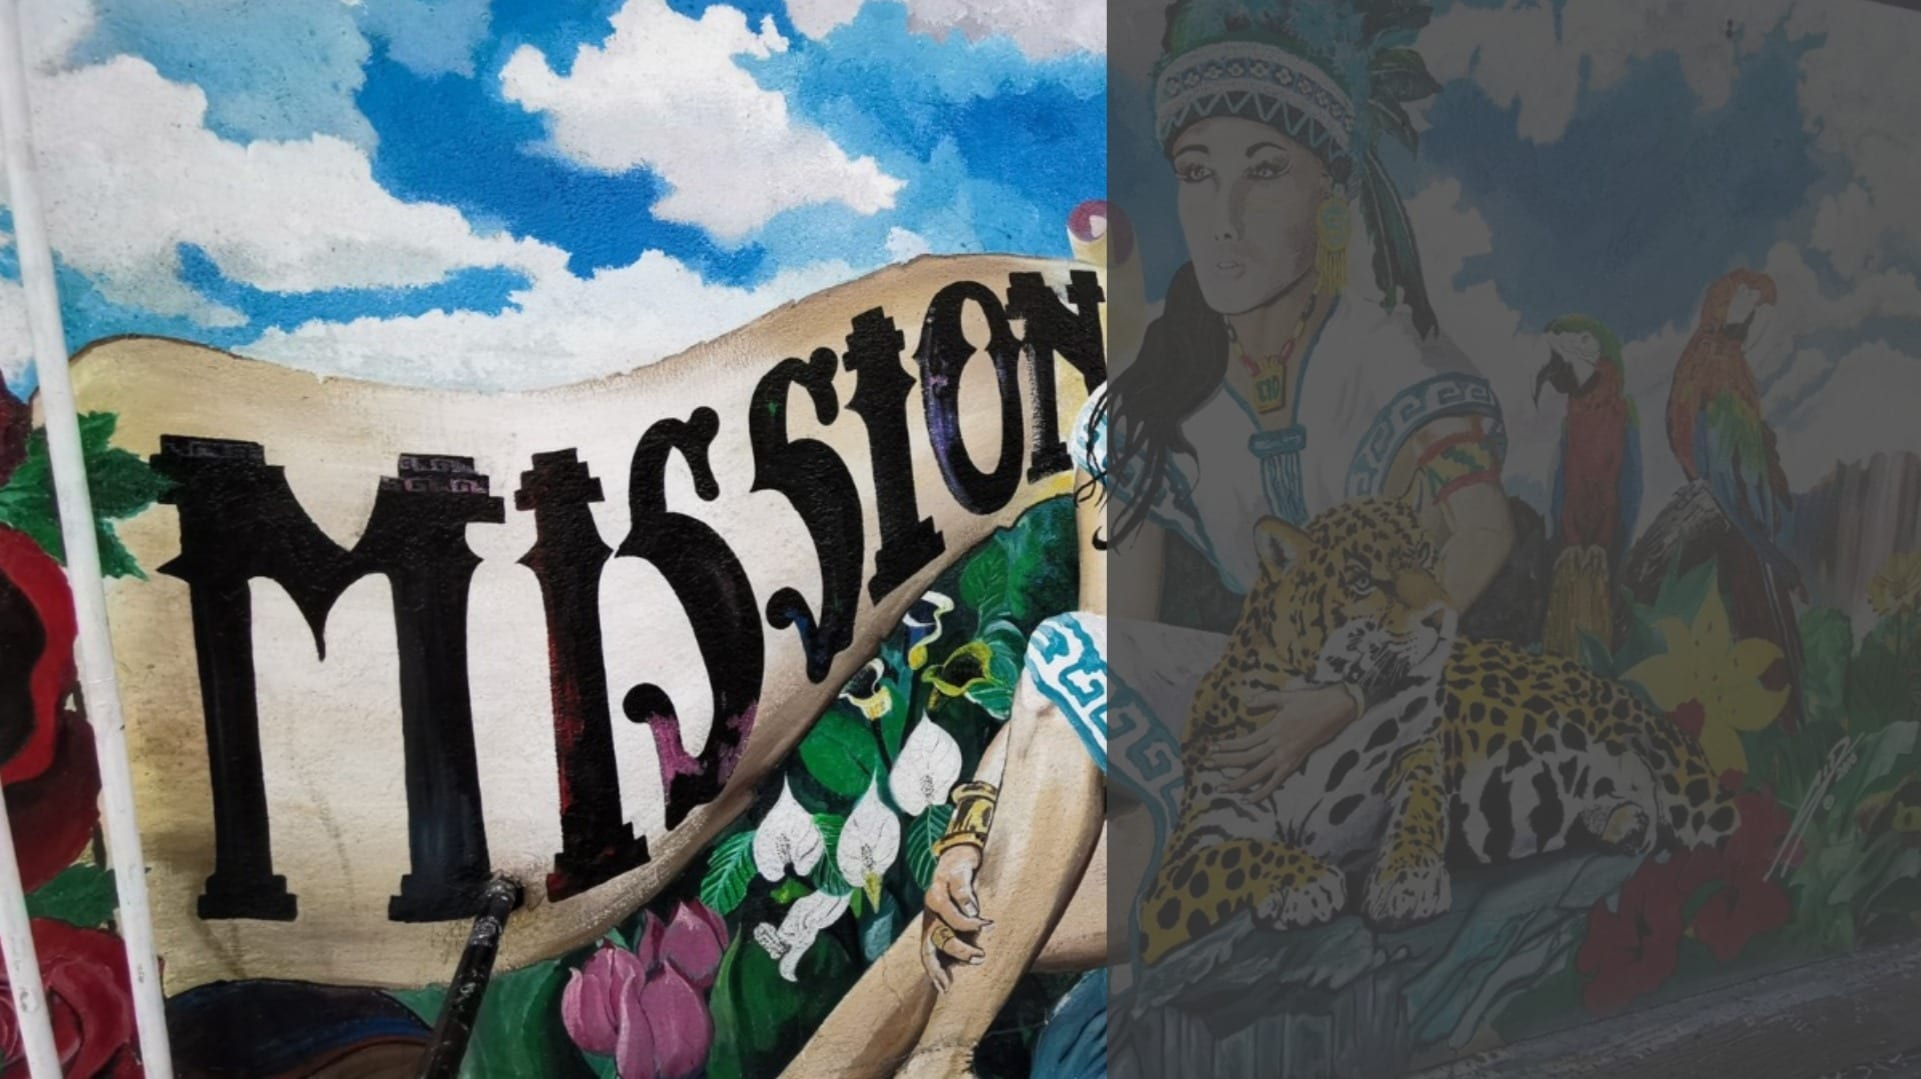 San Francisco's Mission Street murals speak of the city's multicultural history, ethos